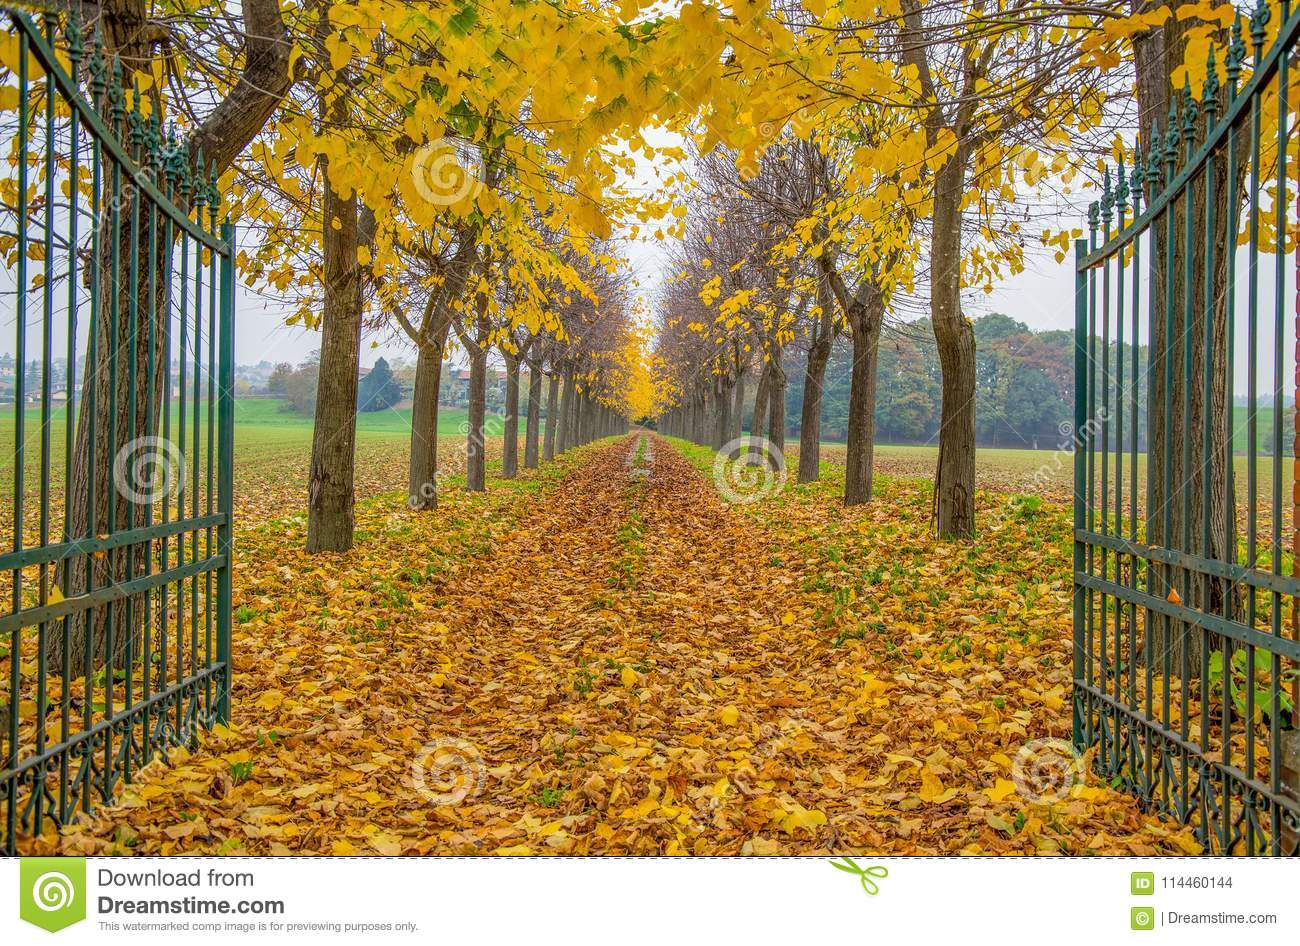 Open gate with foliage in Italy in Autumn time / trees/ gate/ road / empty/ autumn